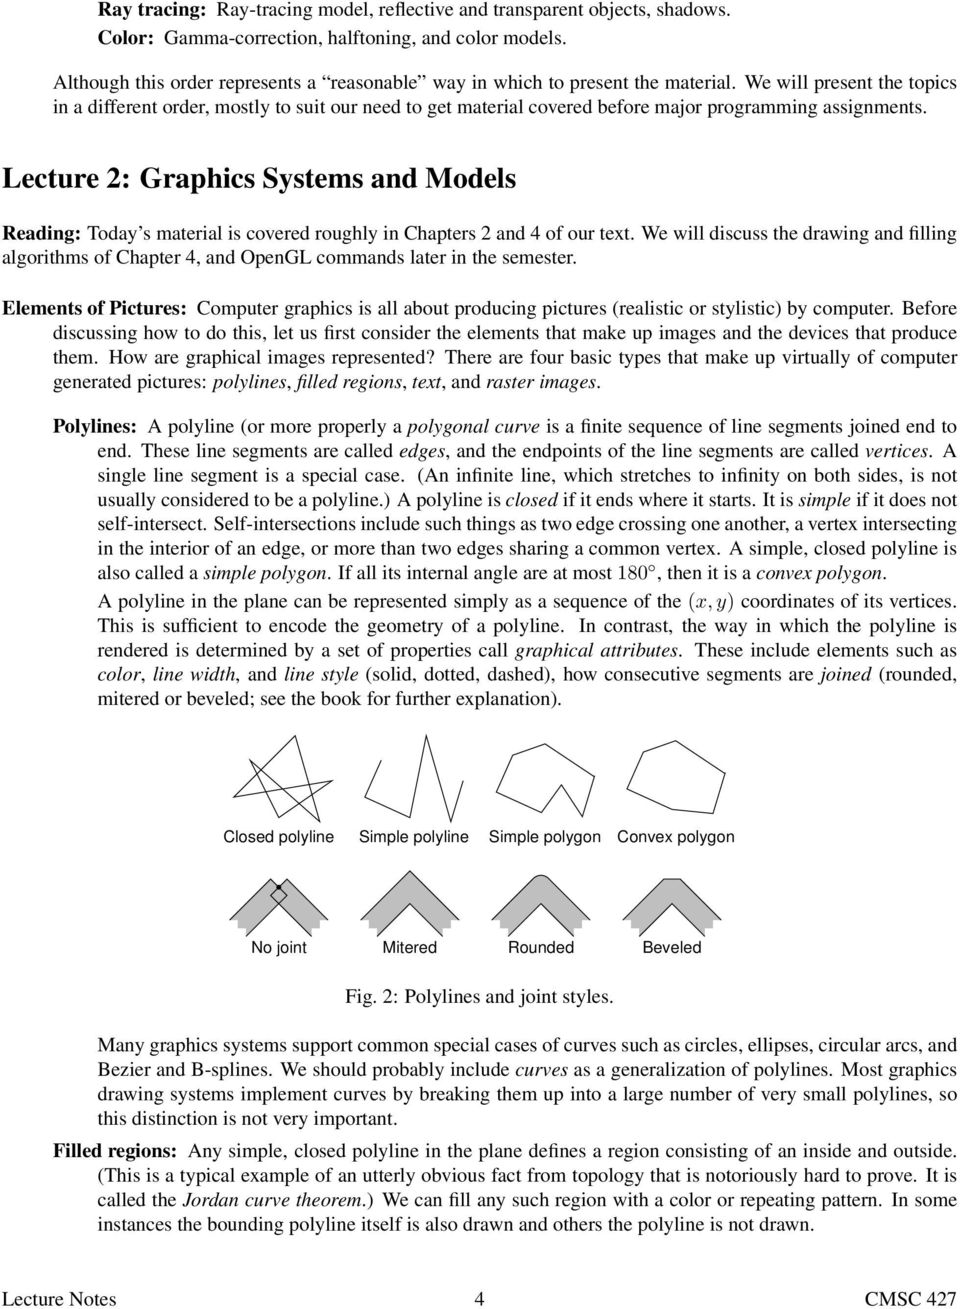 Computer Graphics Lecture Notes